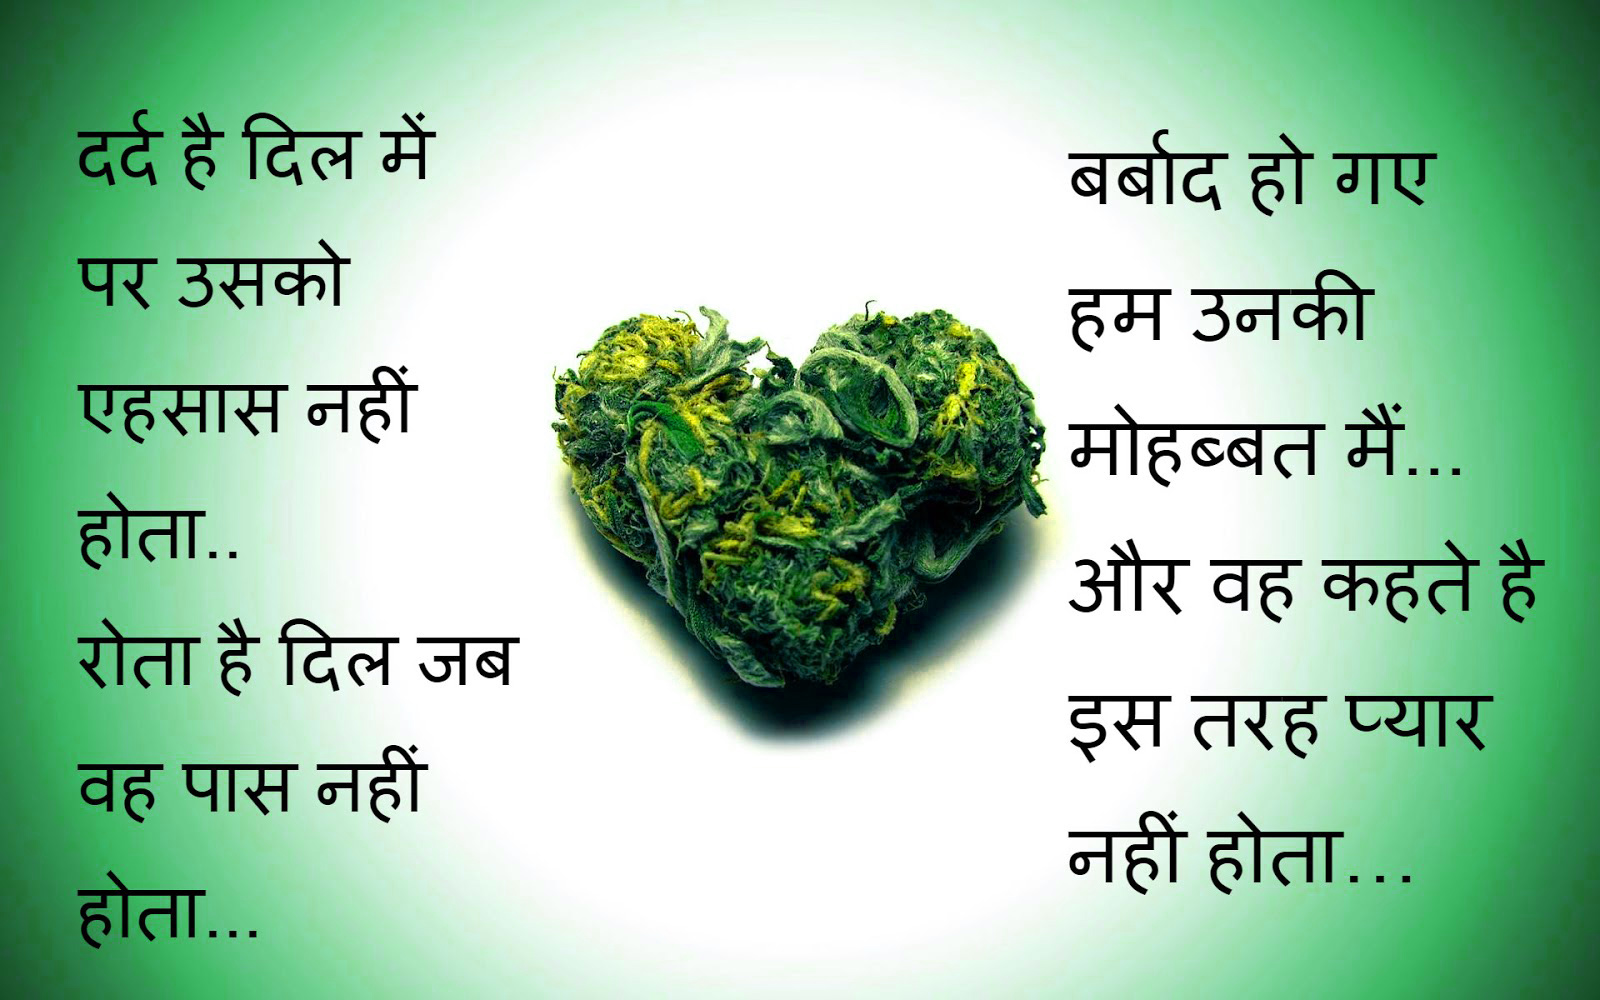 Hindi Sad Love Romantic Shayari Pictures Images Photo Download